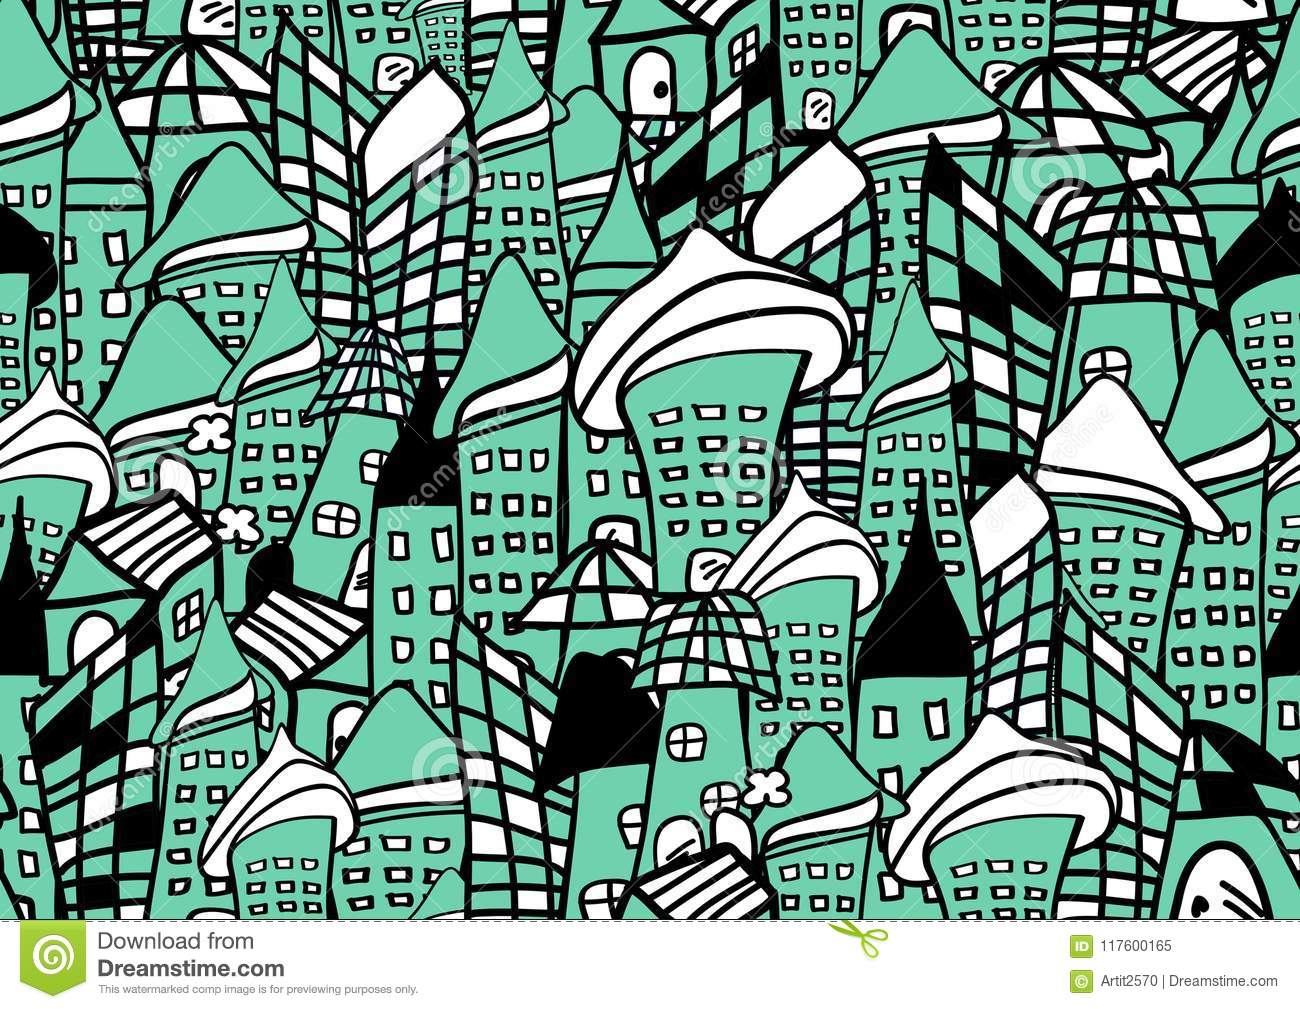 Houses And Buildings Seamless Pattern Vector Illustration For Fabric Cloth Package Wall Decoration Furniture Printing Media Stock Vector Illustration Of Graphic Apartment 117600165